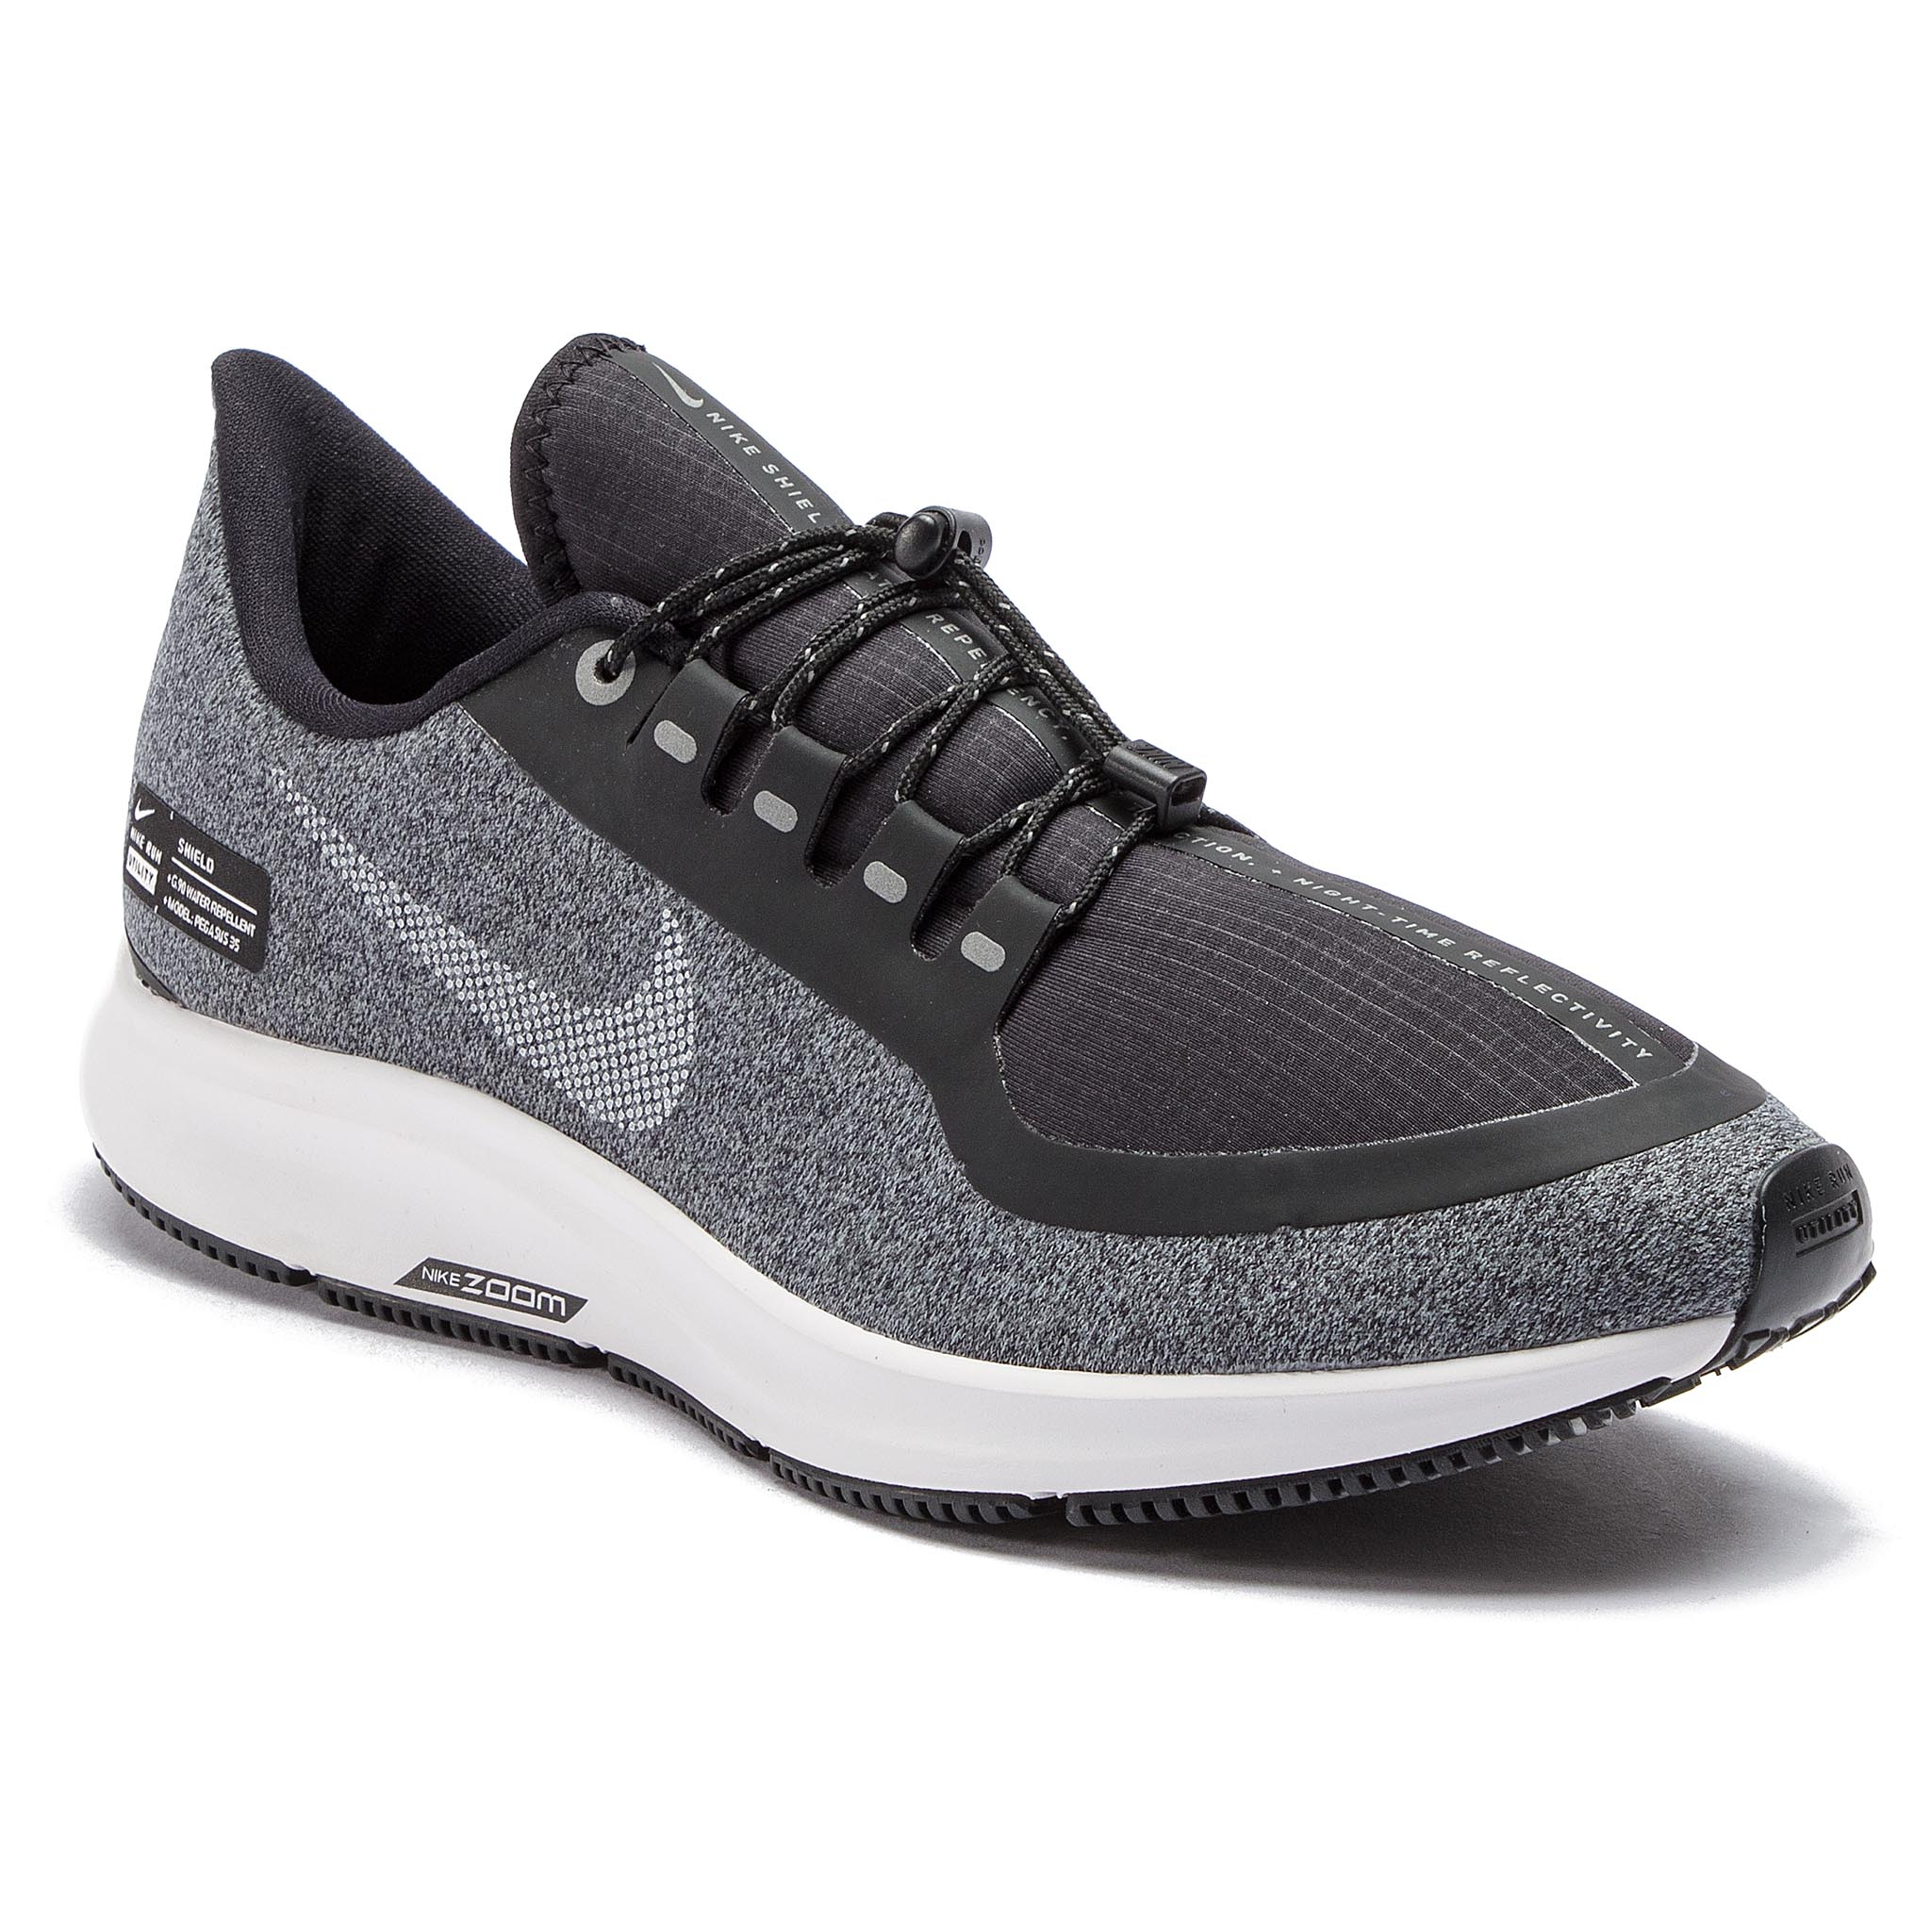 cheap for discount c6177 d2e80 Shoes NIKE - Exp-Z07 AO1544 200 Medium Olive Black - Sneakers - Low ...